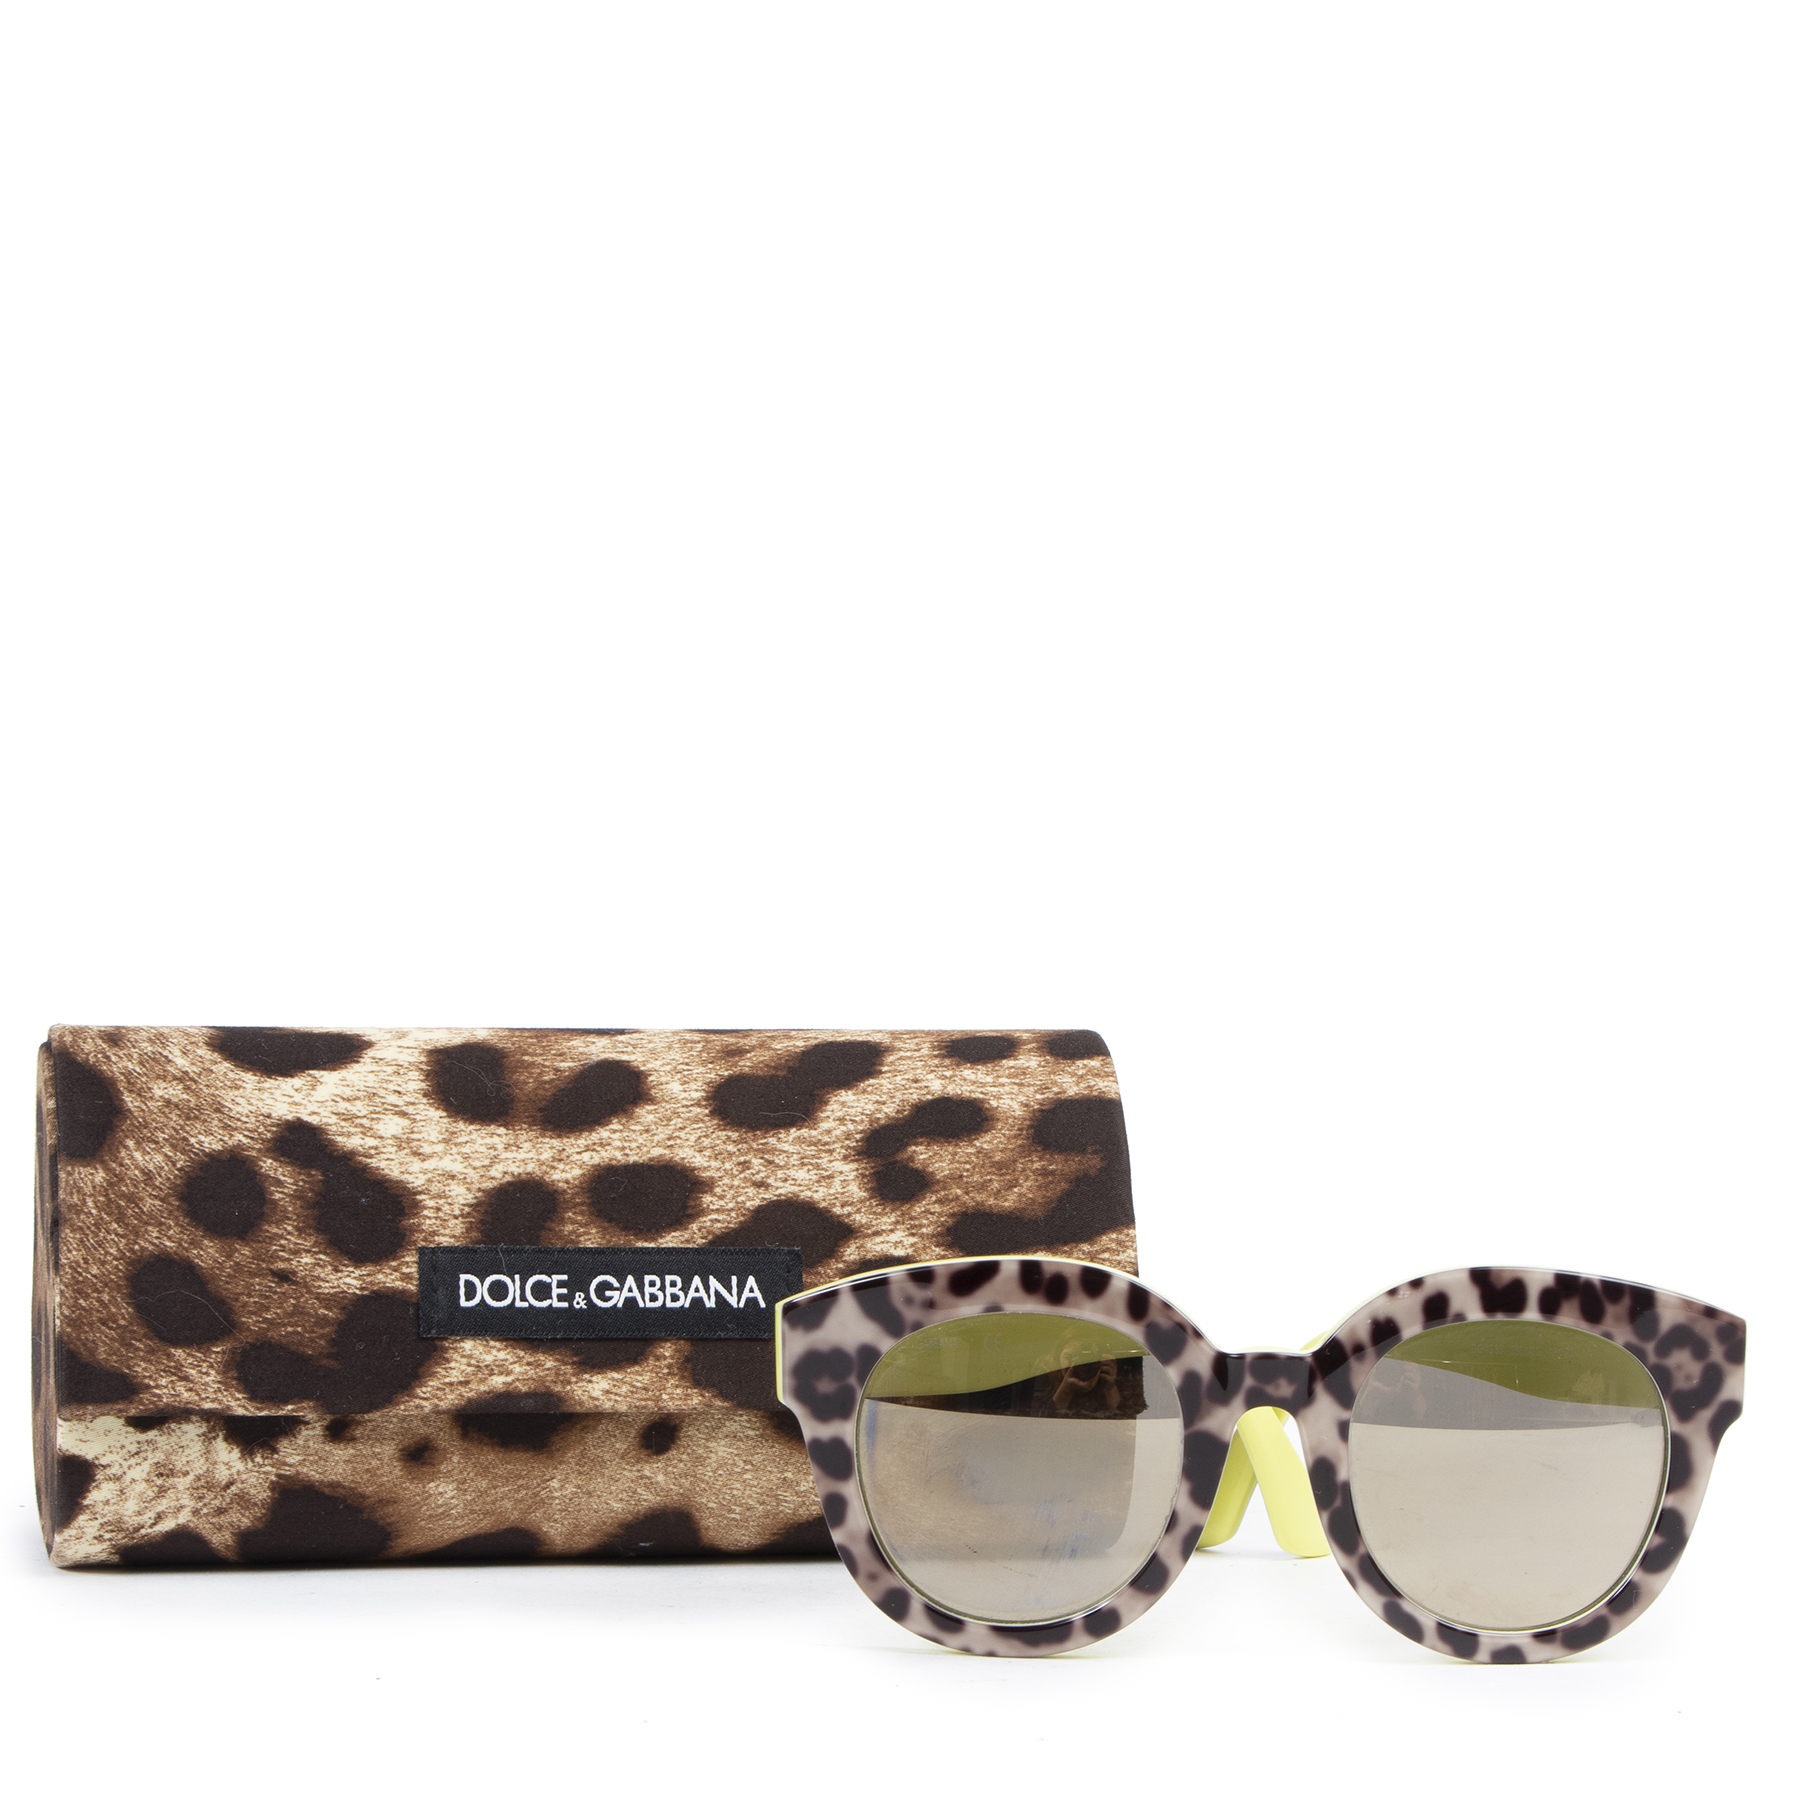 Dolce & Gabbana Leopard and Yellow Sunglasses